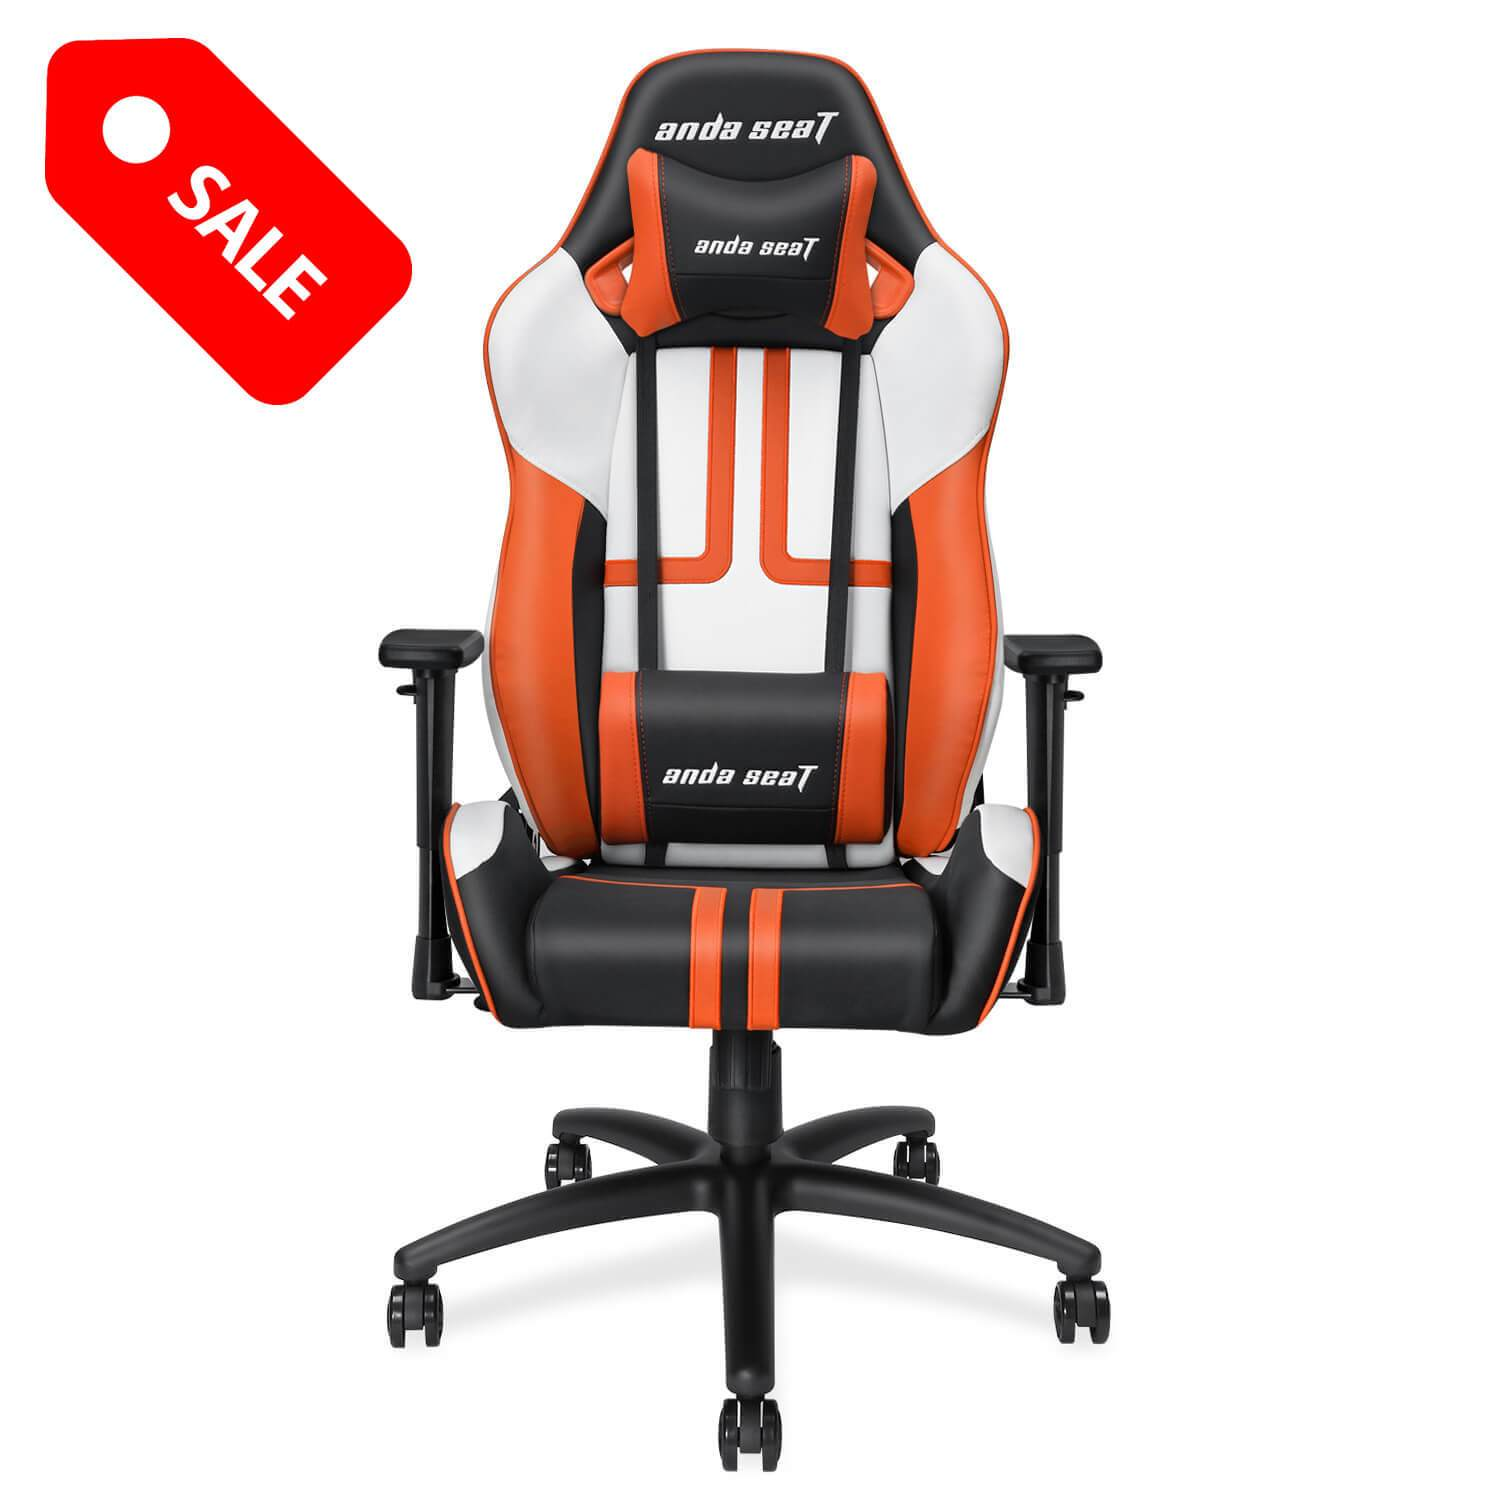 Wondrous Anda Seat Viper Series Leather Gaming Chair Large Size Recliner Chair With Lumbar Support Pillow Ibusinesslaw Wood Chair Design Ideas Ibusinesslaworg